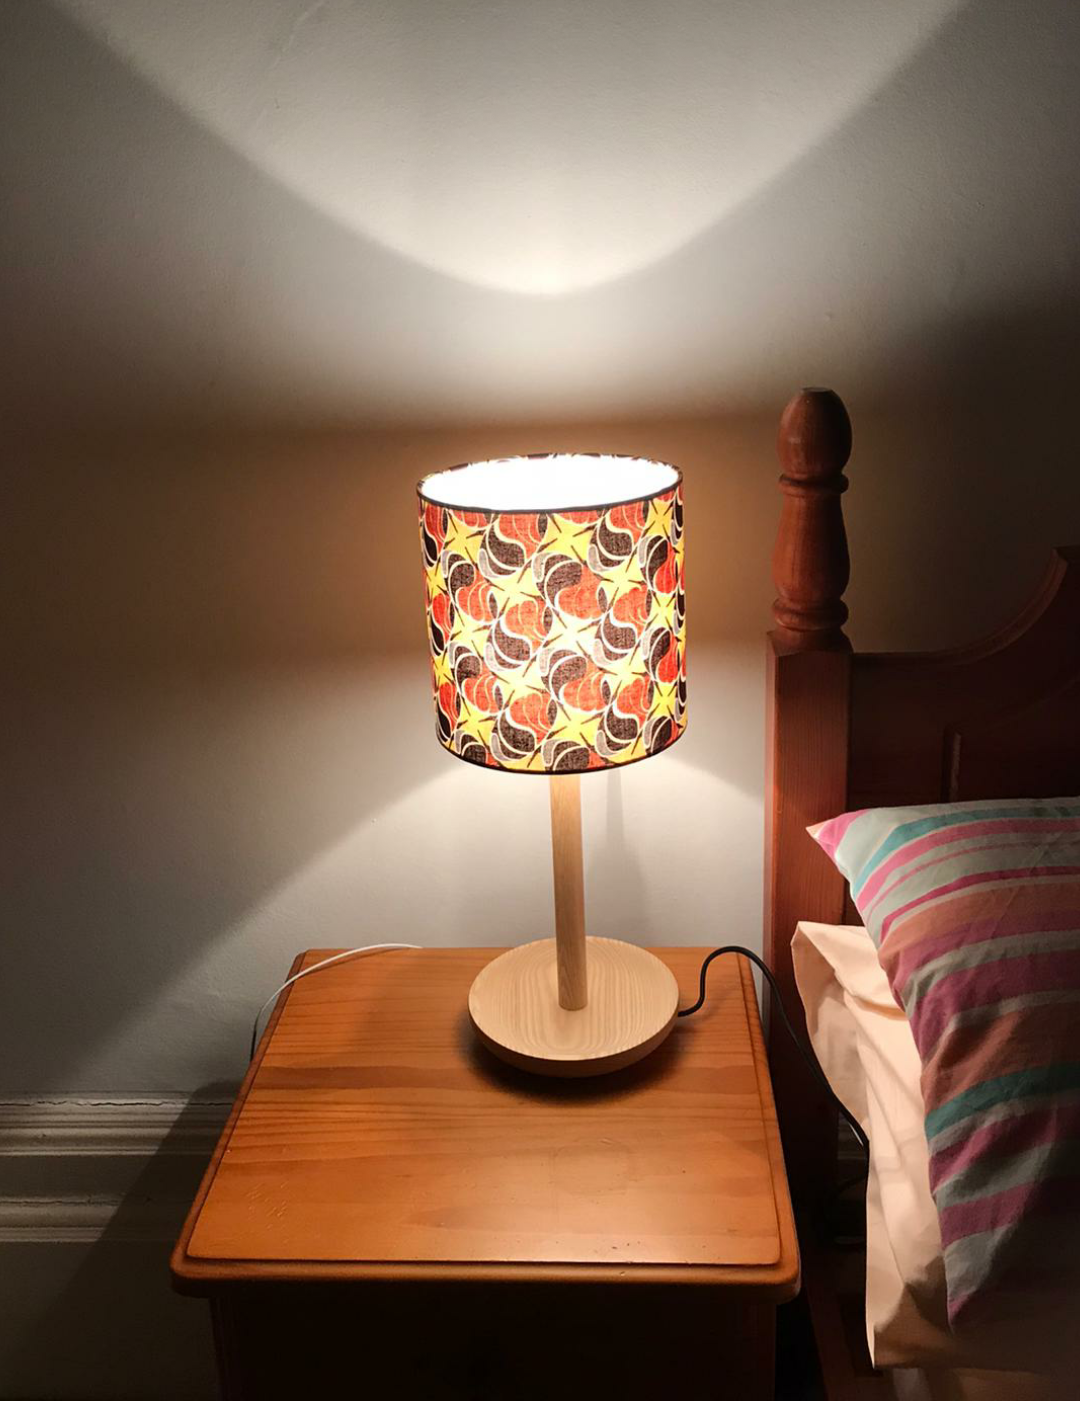 Small bedside table patterned with mixed brown & yellow seeds on an African print fabric. The light is switched on too